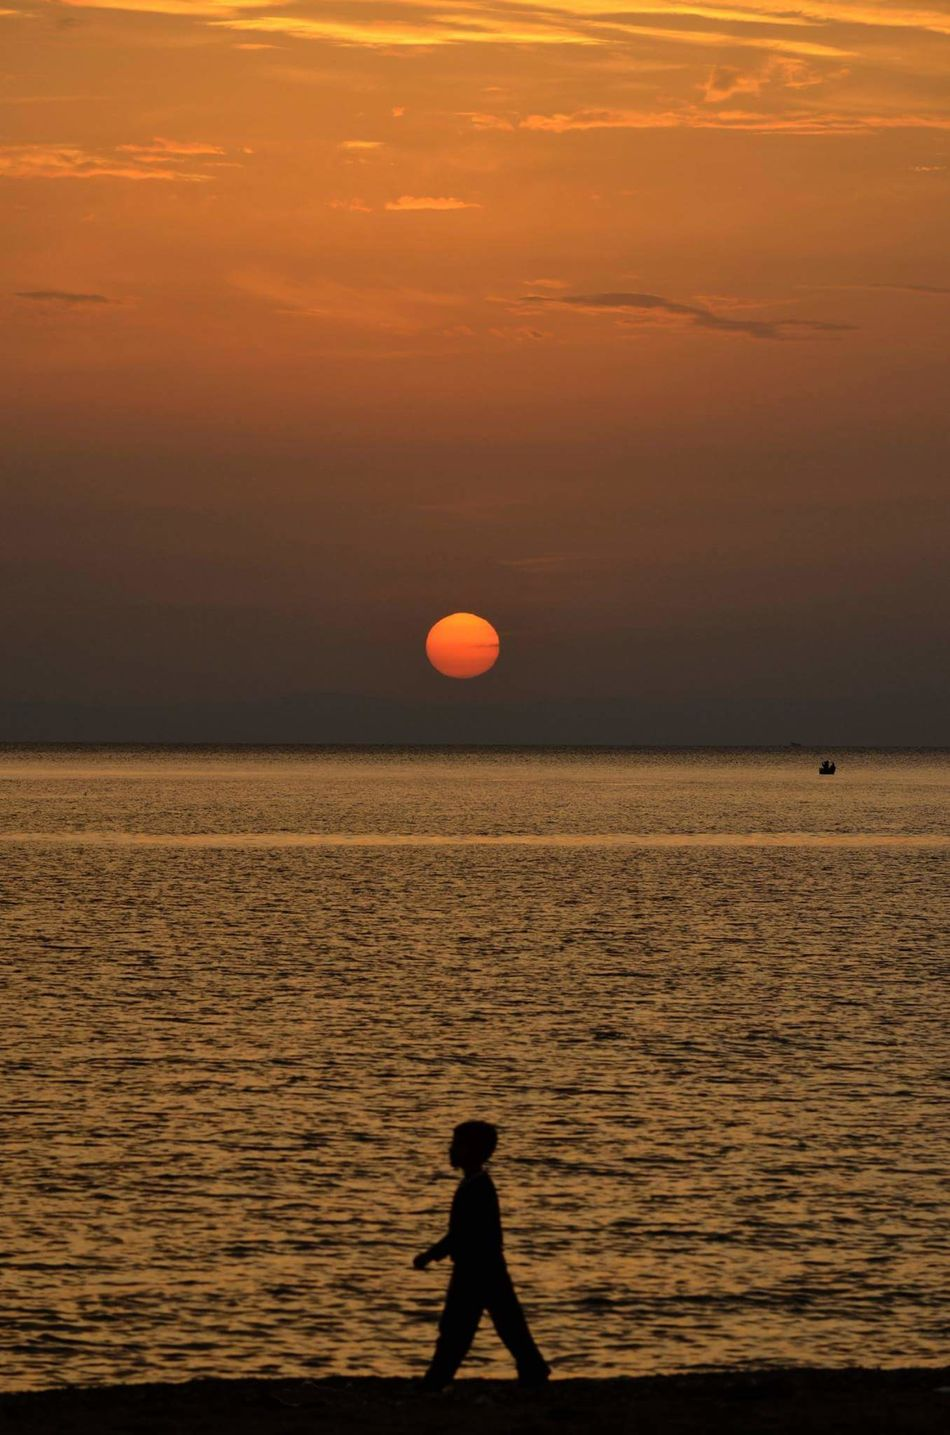 Beach Sea Sunset People Children Only Nature Only Men One Man Only Person Beach Sea Sunset Tranquility One Person Outdoors Silhouette Sport People Leisure Activity Full Length Children Only Nature Cloud - Sky Person Beauty In Nature